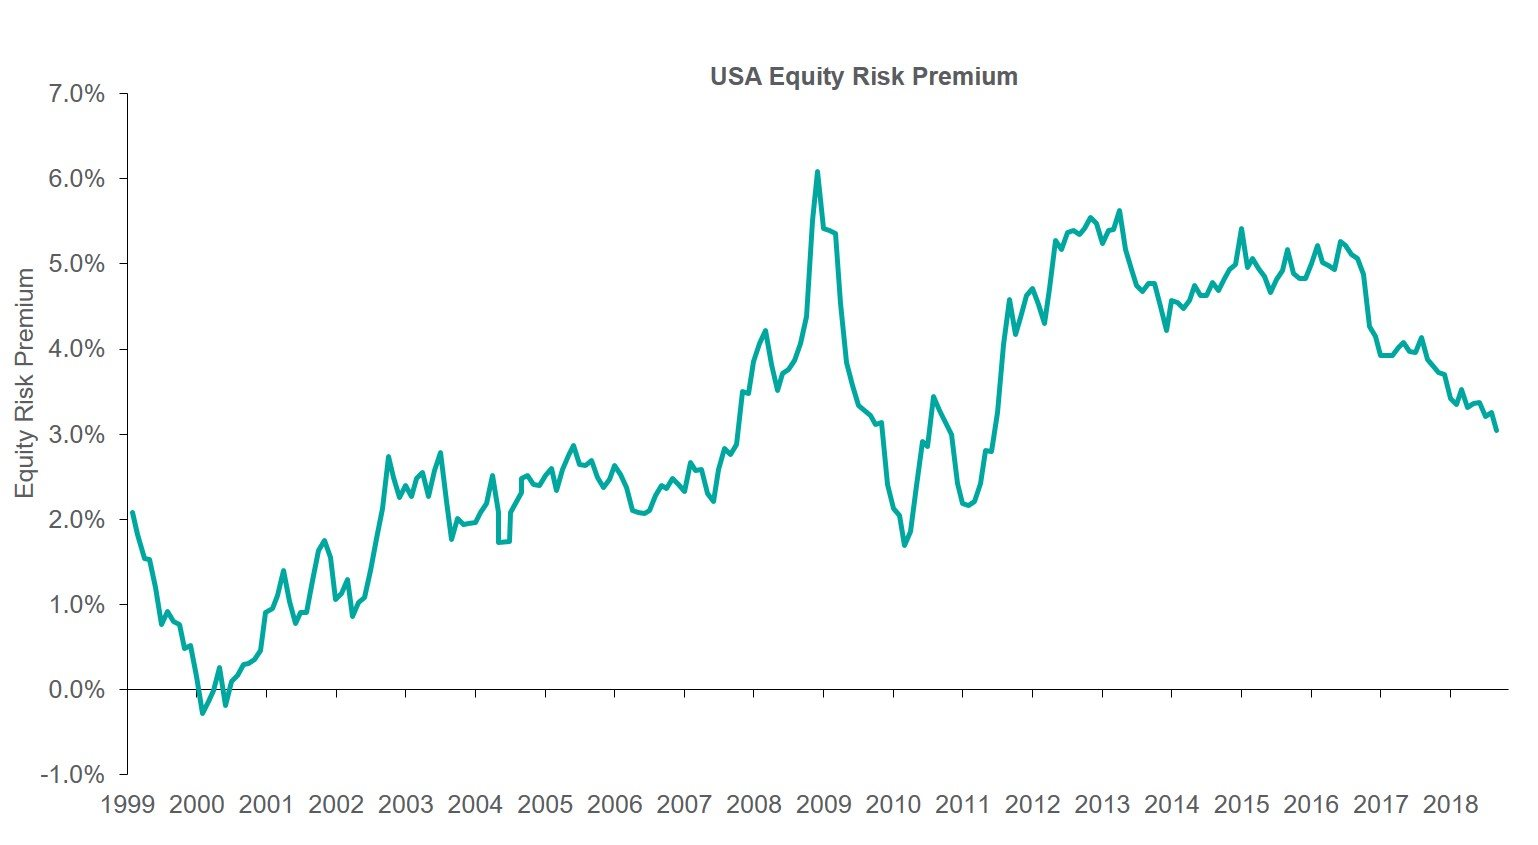 USA Equity Risk Premium